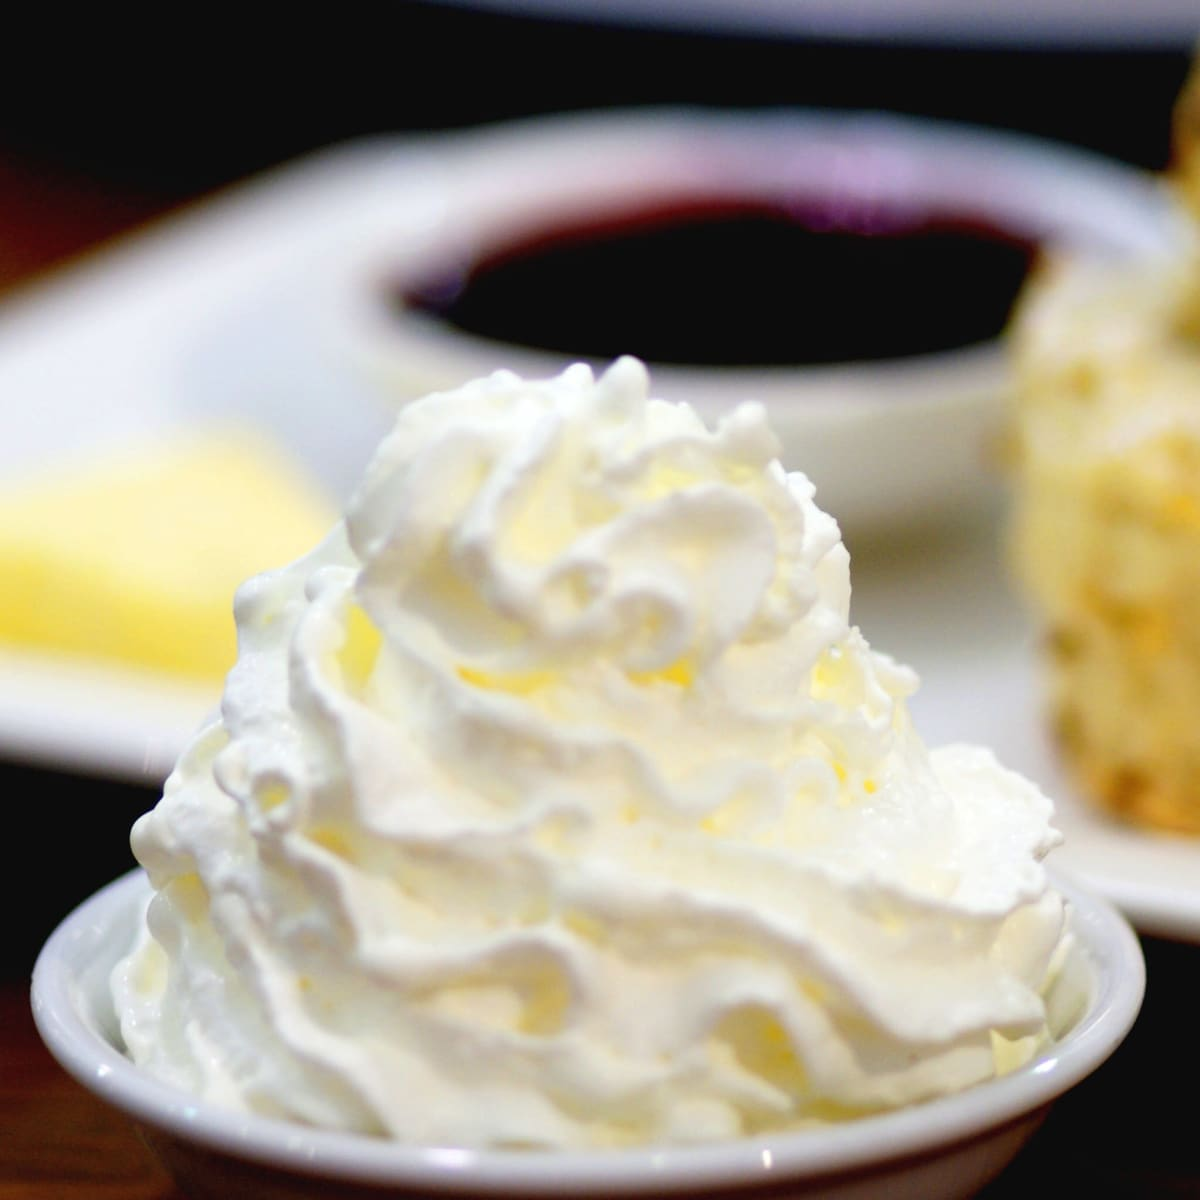 10 Whipped Cream Recipes For A Whipped Cream Dispenser Delishably Food And Drink